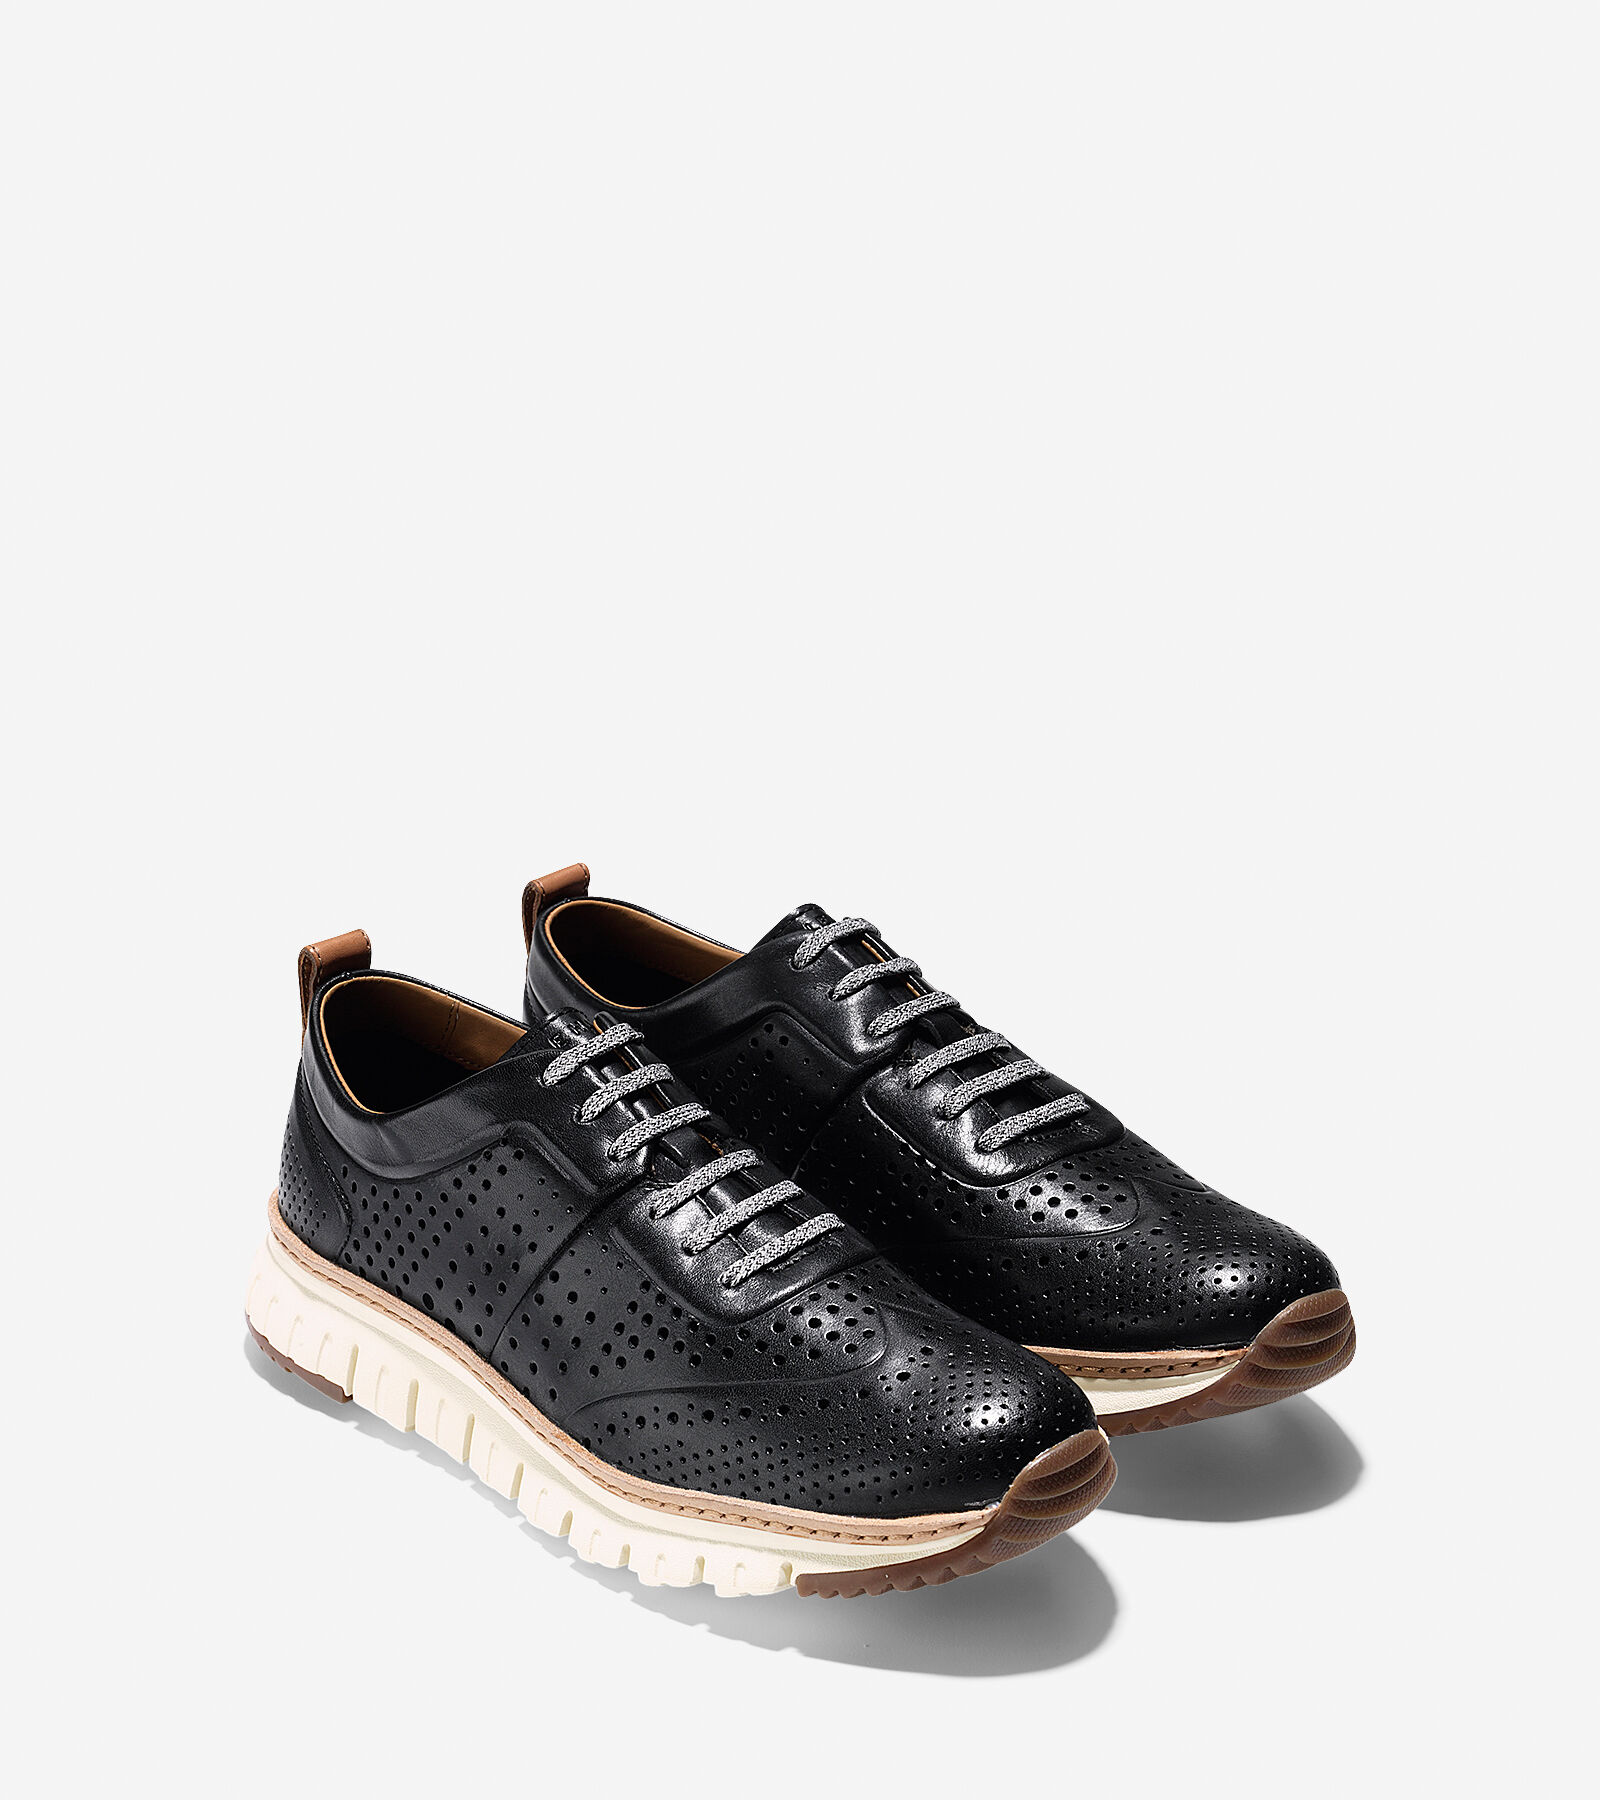 Cole Haan Men's Shoes Zerogrand Perforated Sneaker